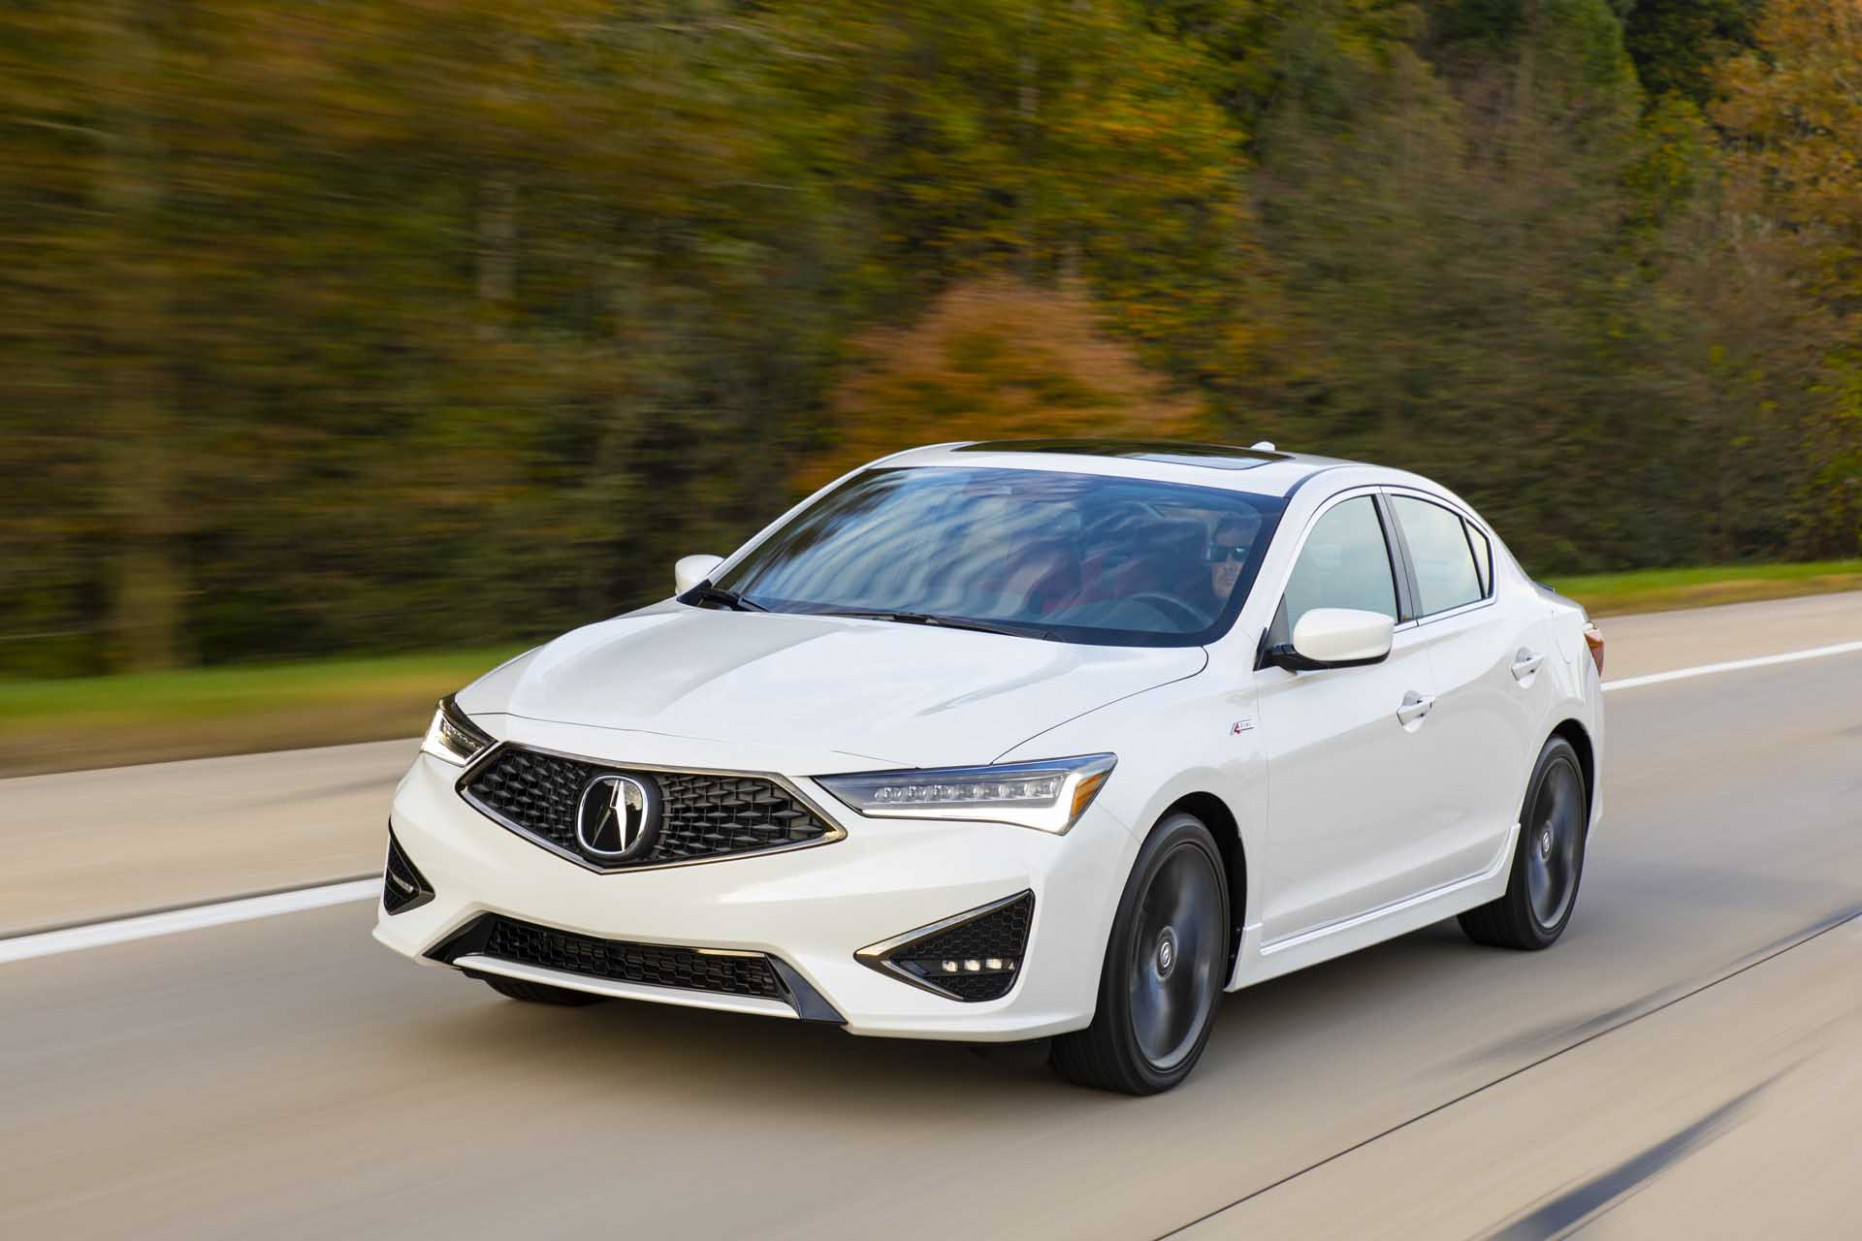 6 Acura ILX Review, Ratings, Specs, Prices, and Photos - The ...